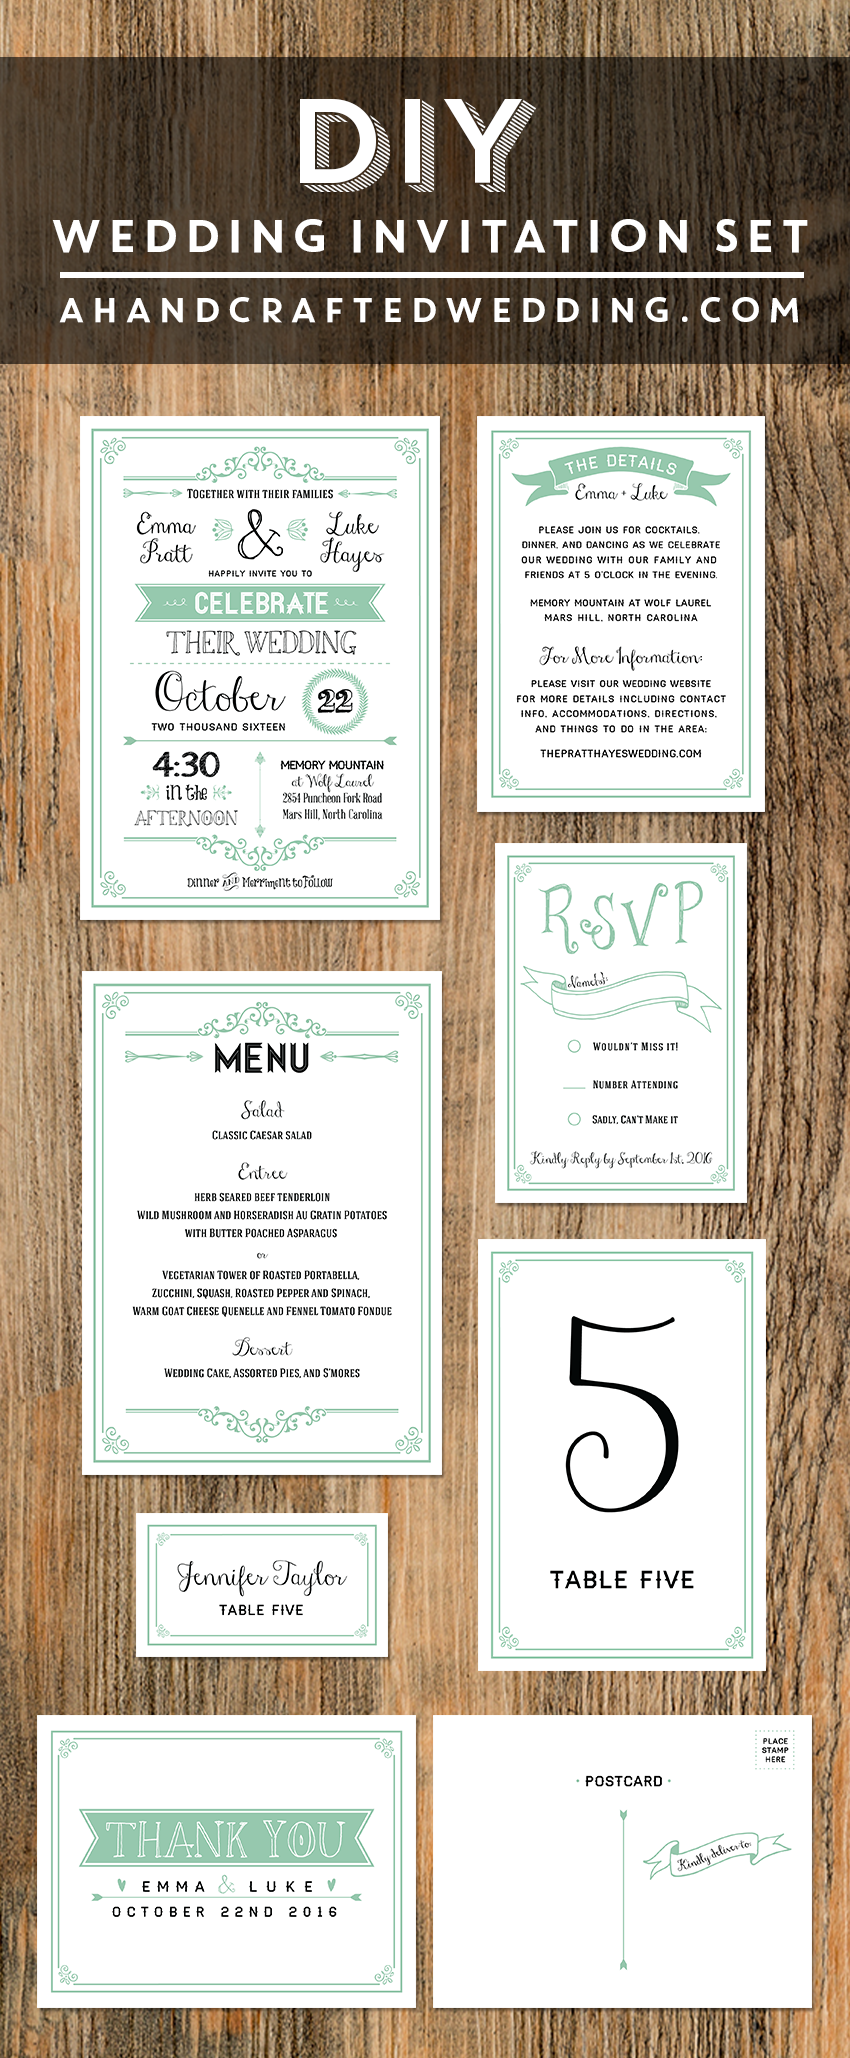 Mint DIY Wedding Invitation Set ahandcraftedweddingcom